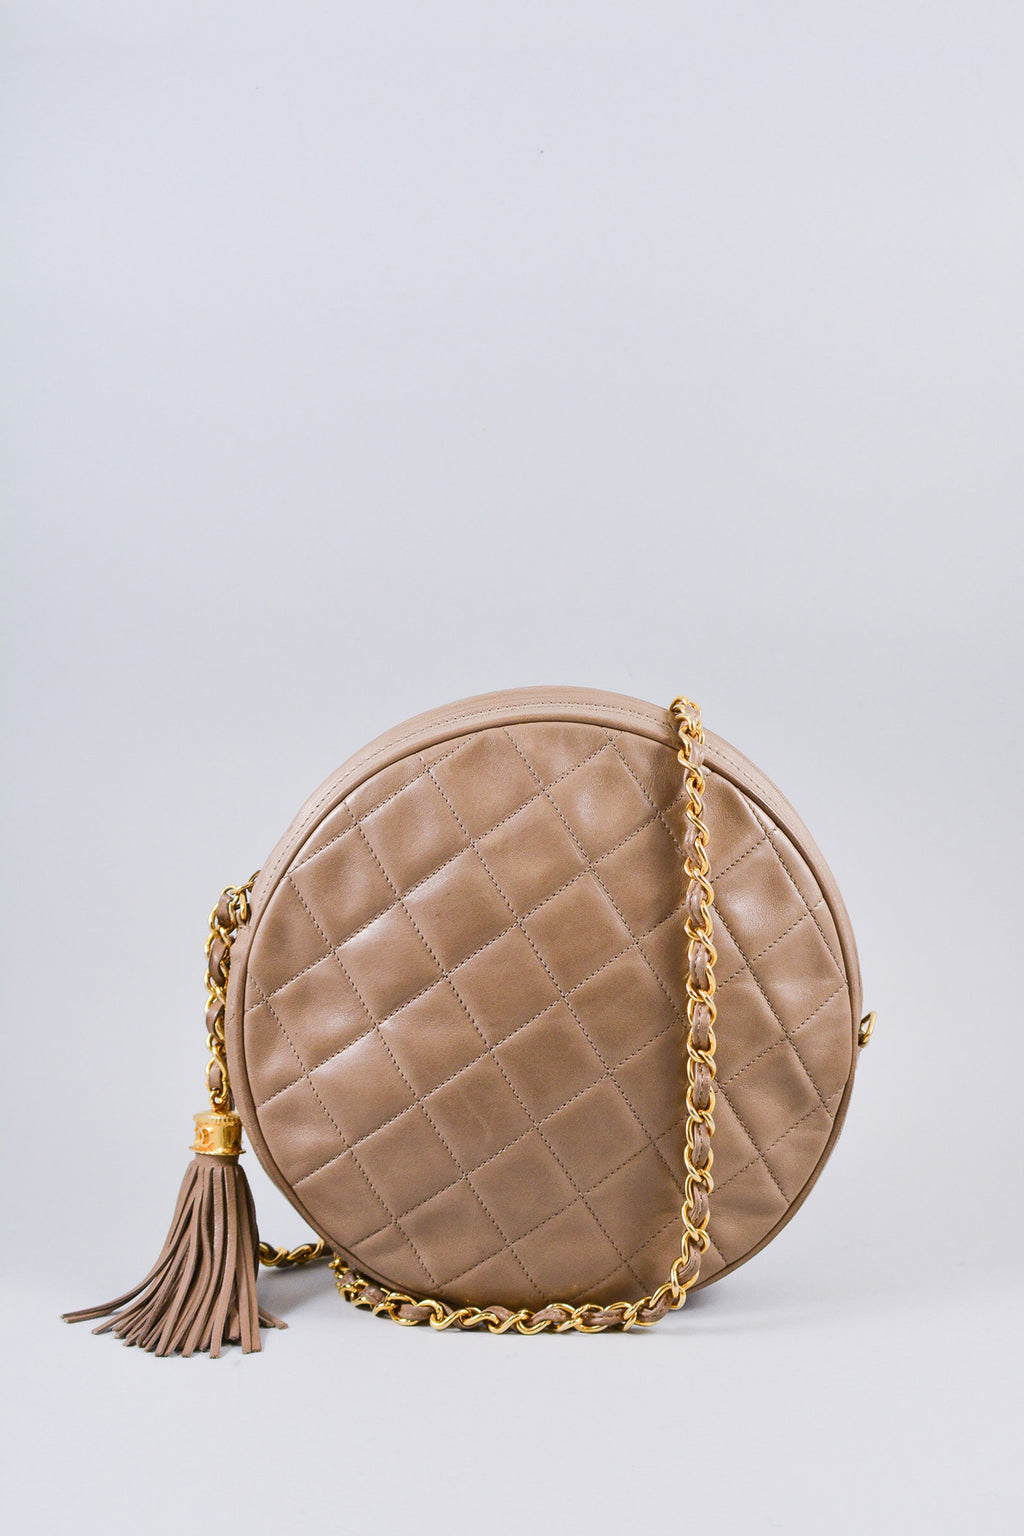 Chanel Beige Round Quilted Crossbody w/ Gold Chain